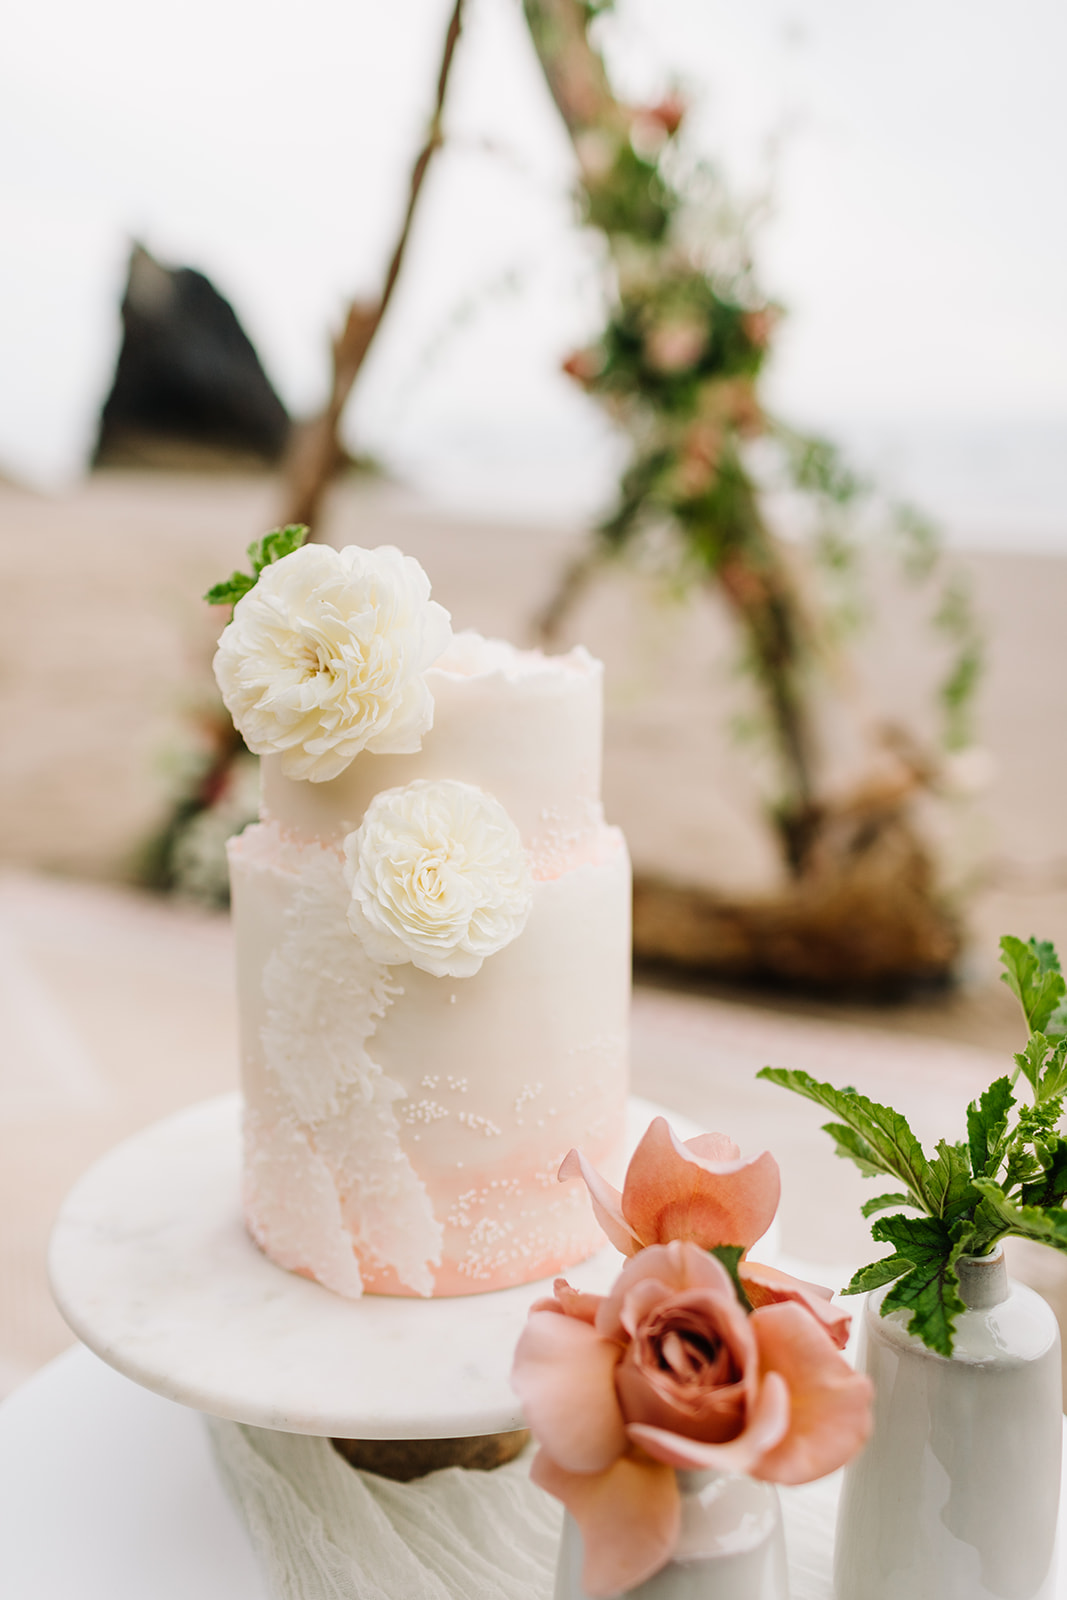 white beach wave cake decorated with flowers